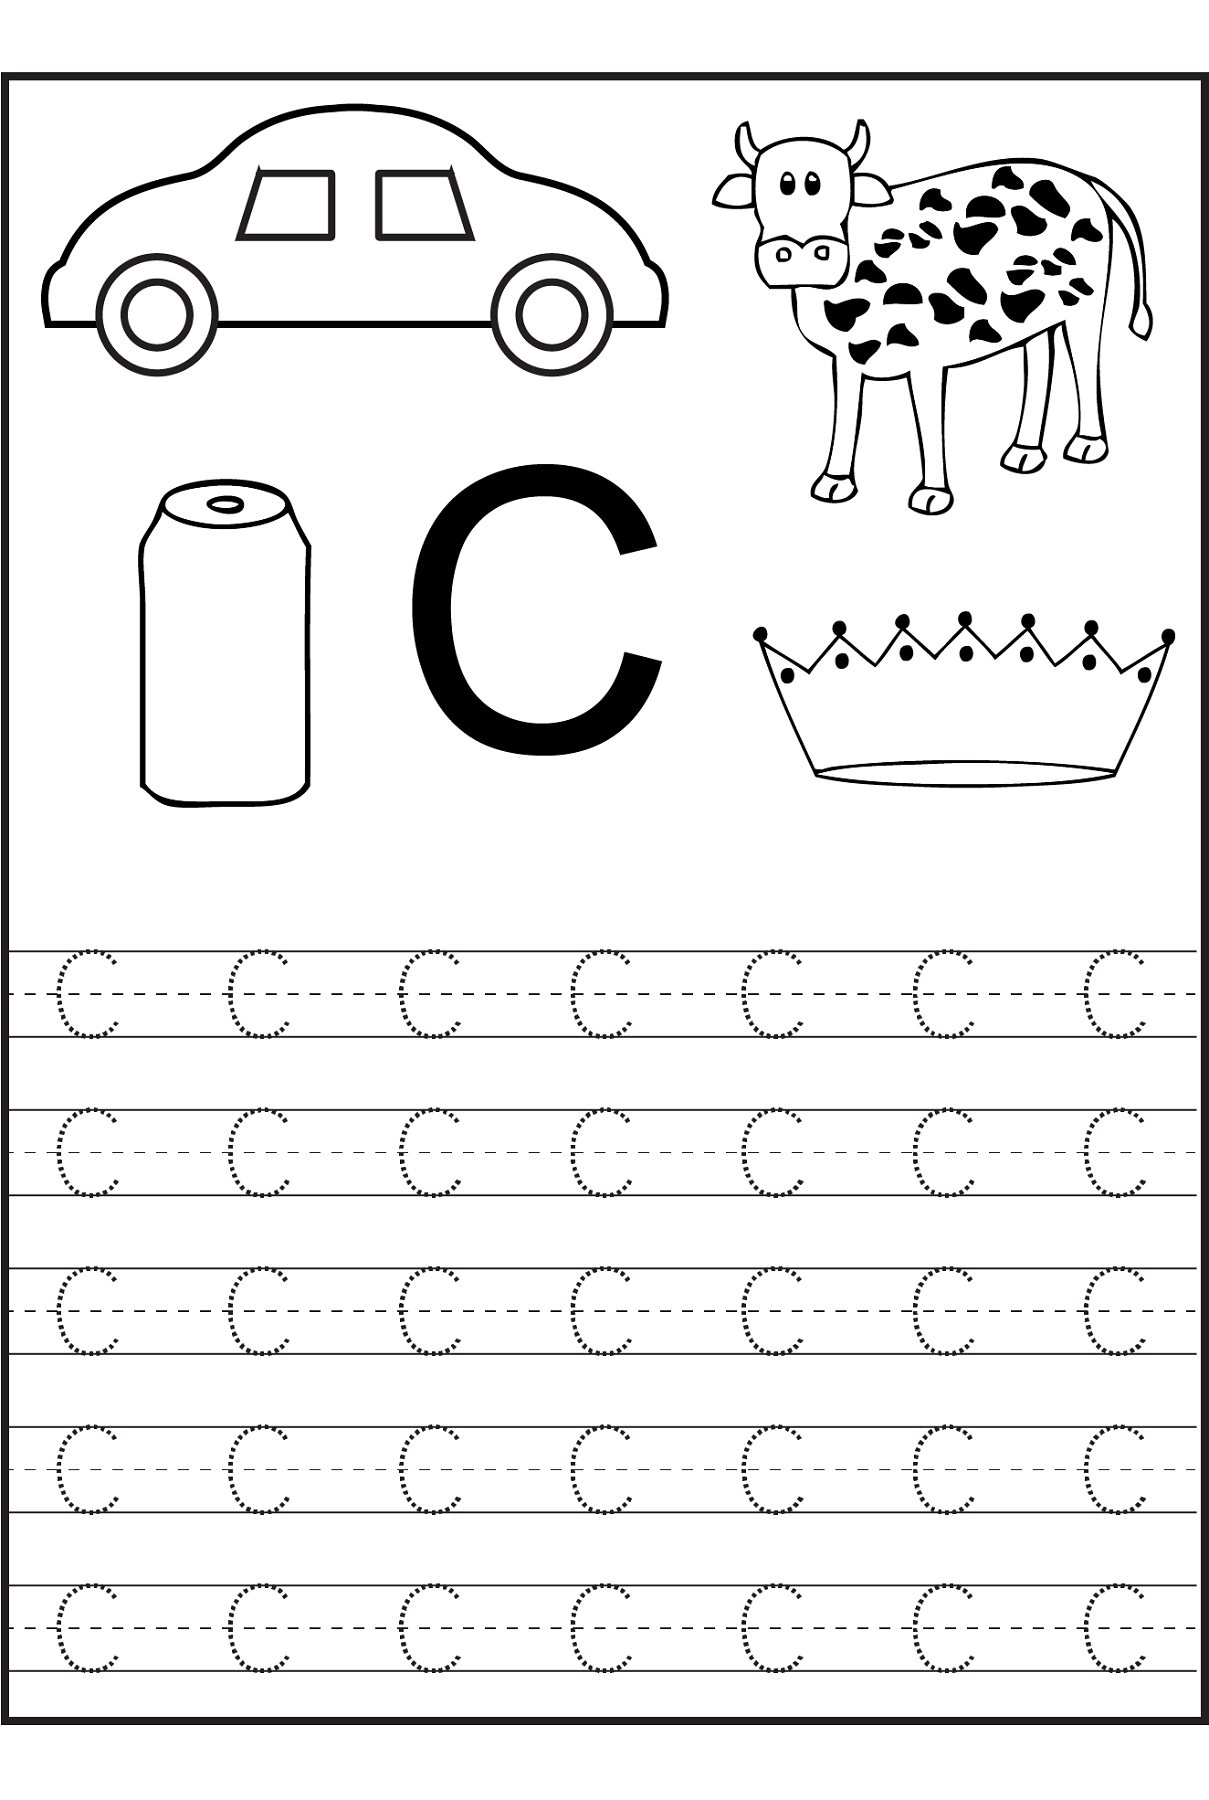 Trace The Letter C Worksheets Preschool Worksheets Letter C with Letter C Tracing Printable